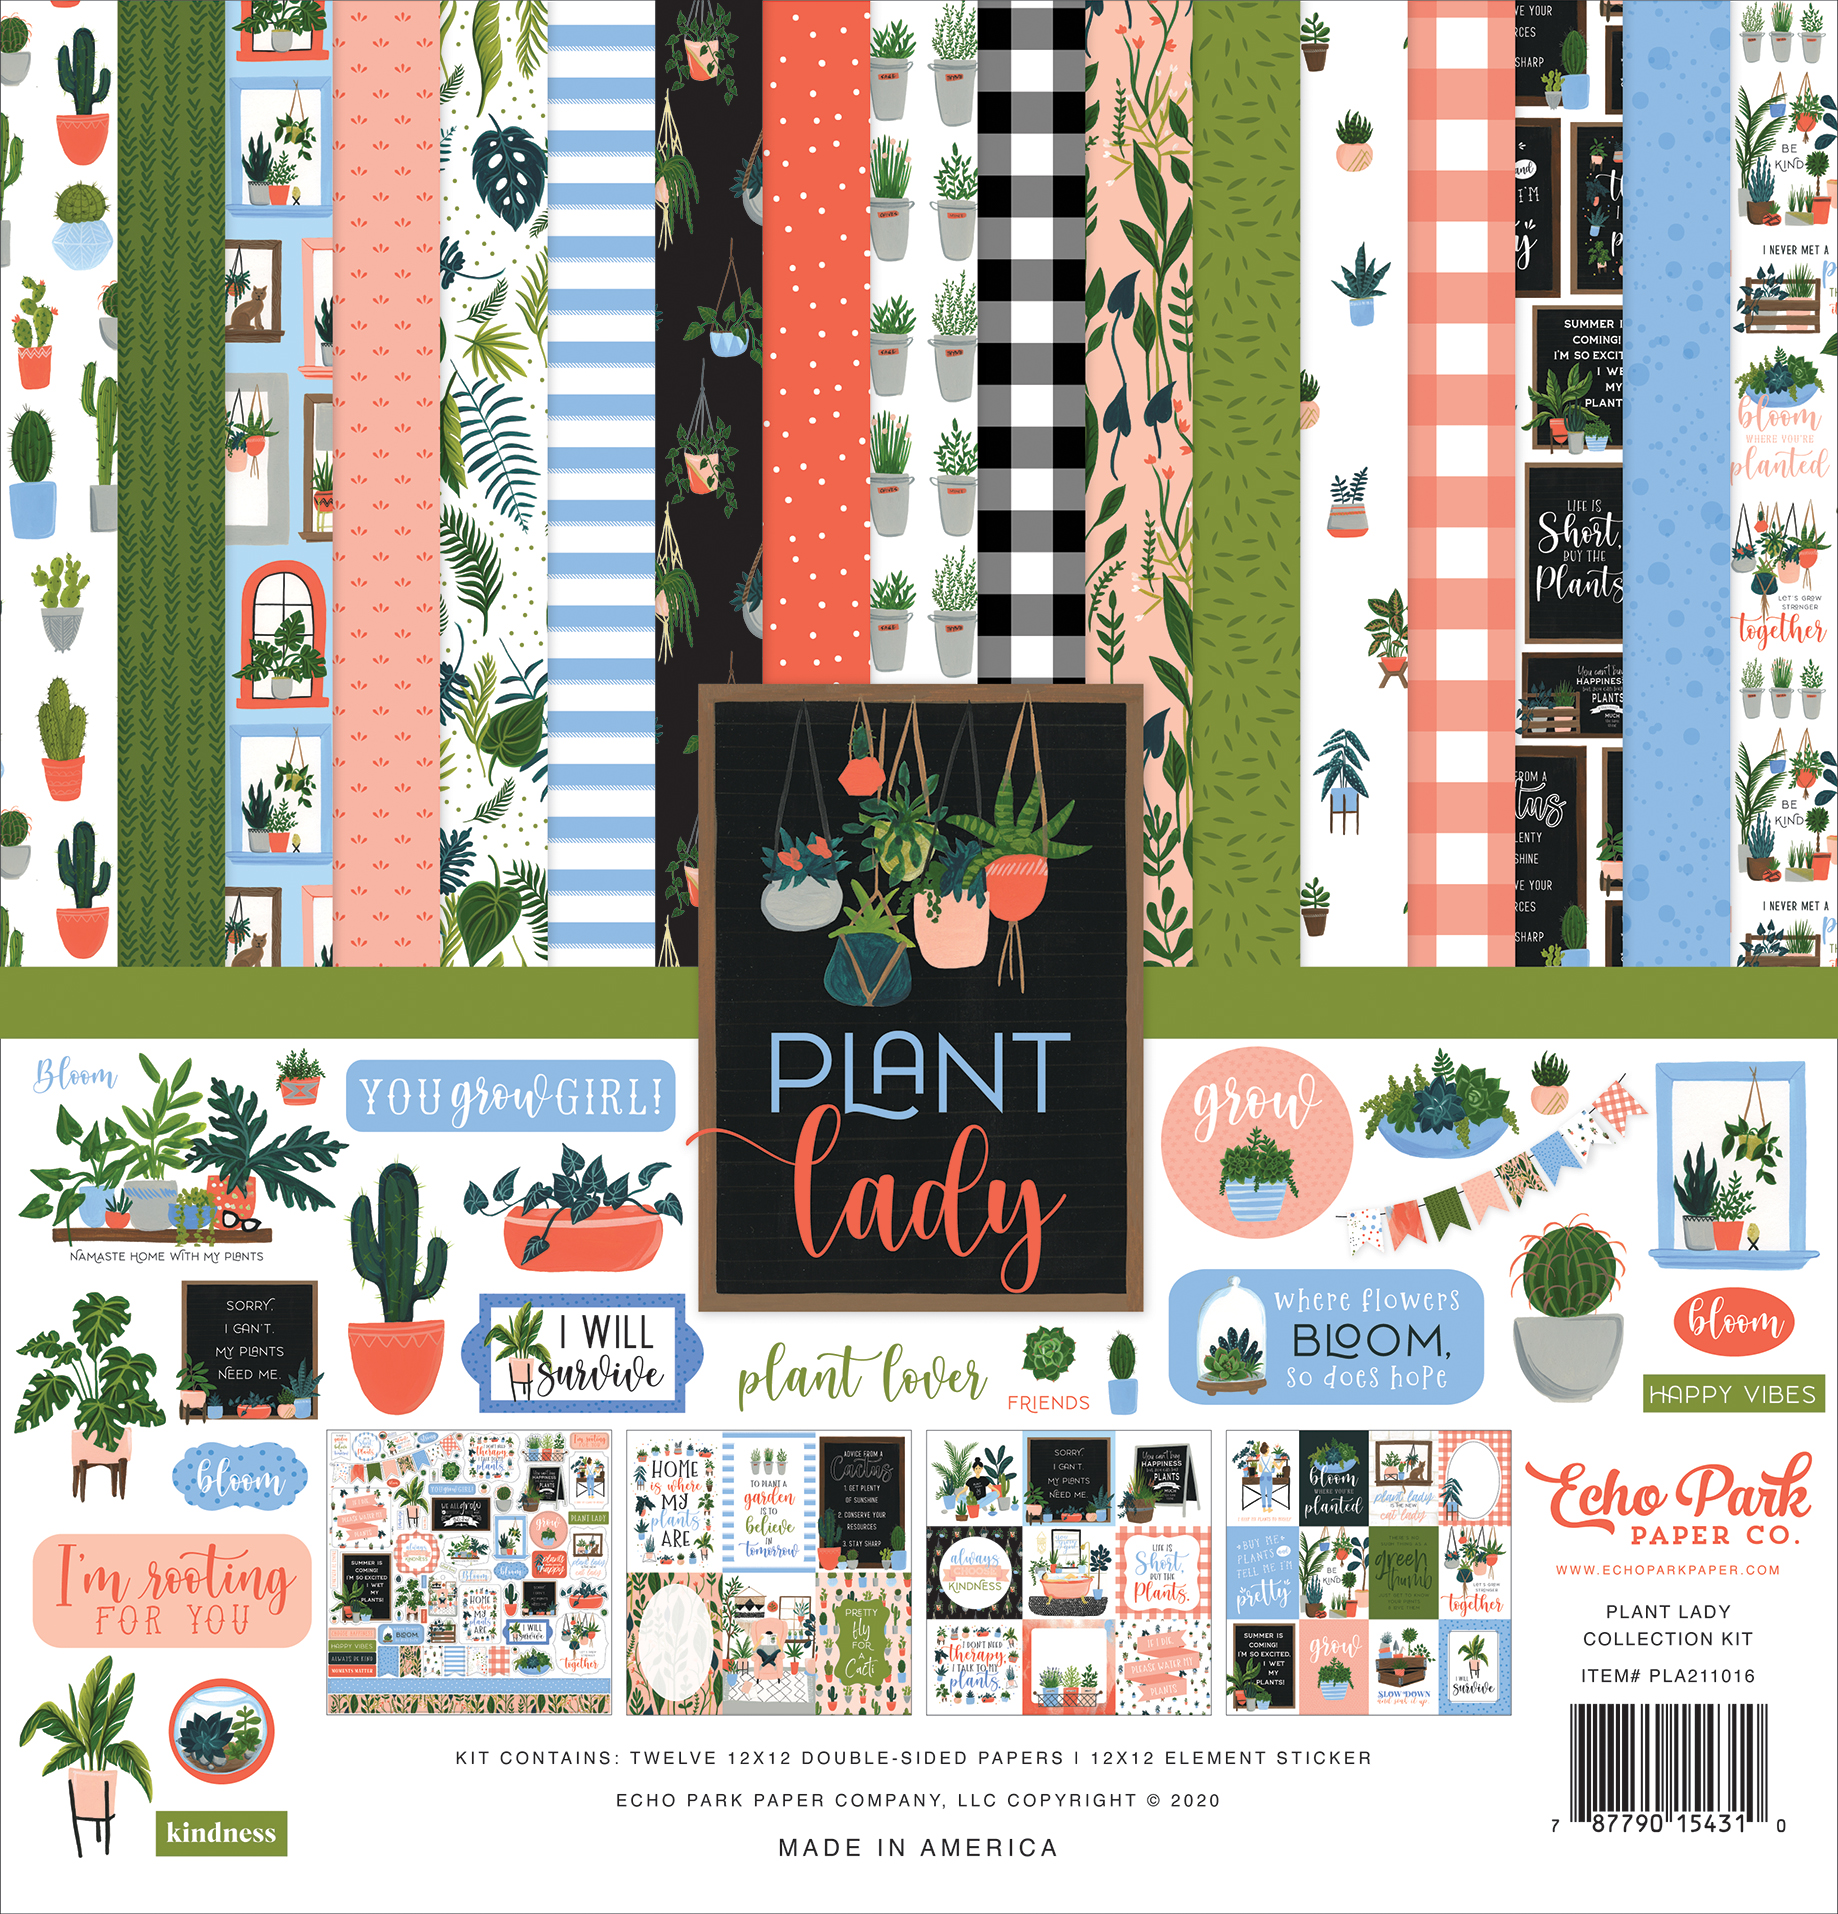 Plant Lady Collection Kit